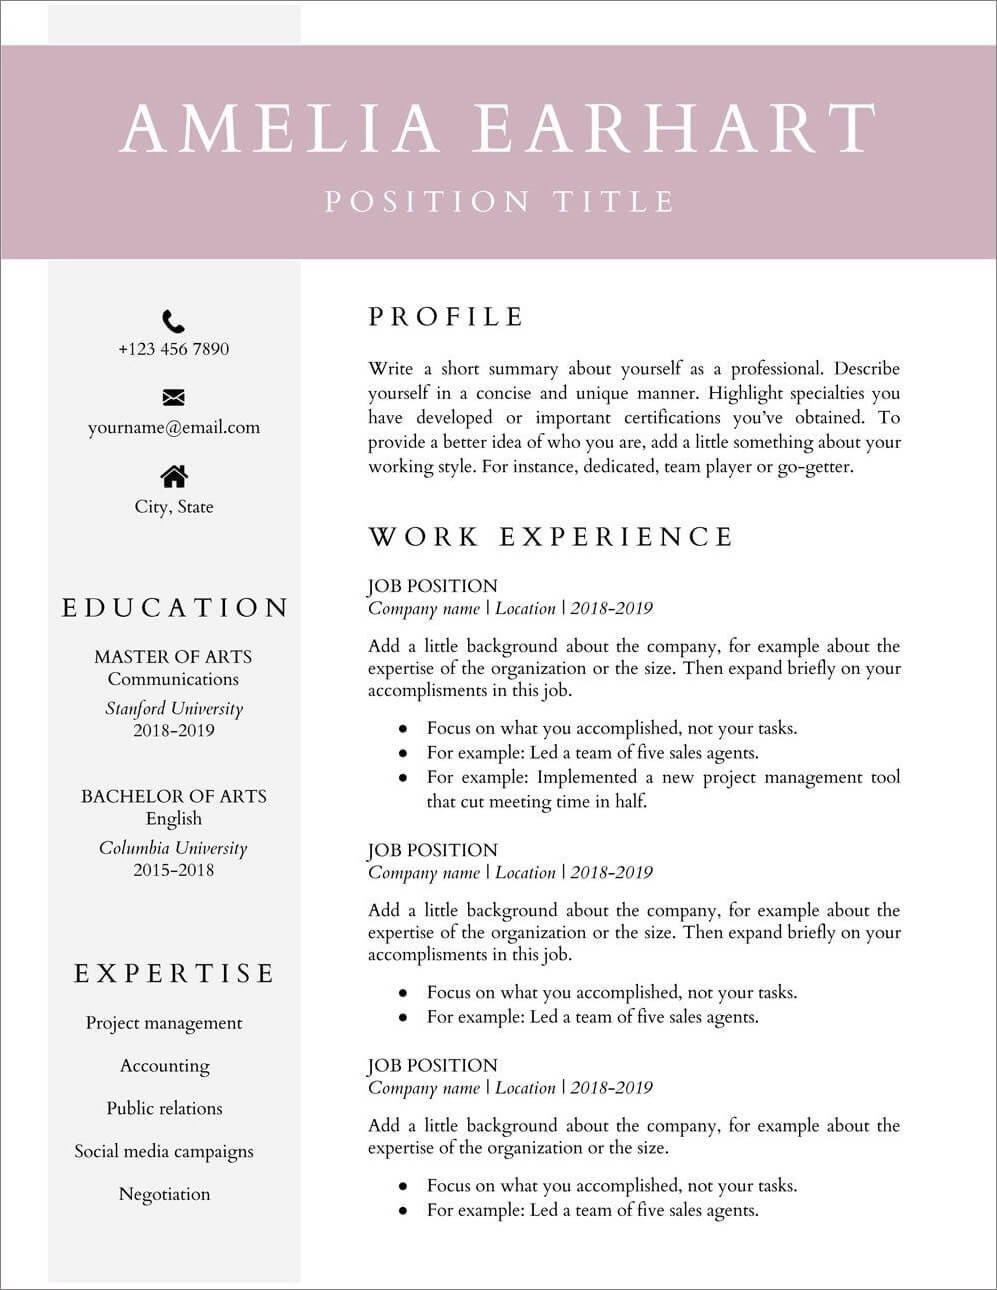 resume templates for google docs free resumelab new job restaurant template tier help Resume Resume Google Doc Templates